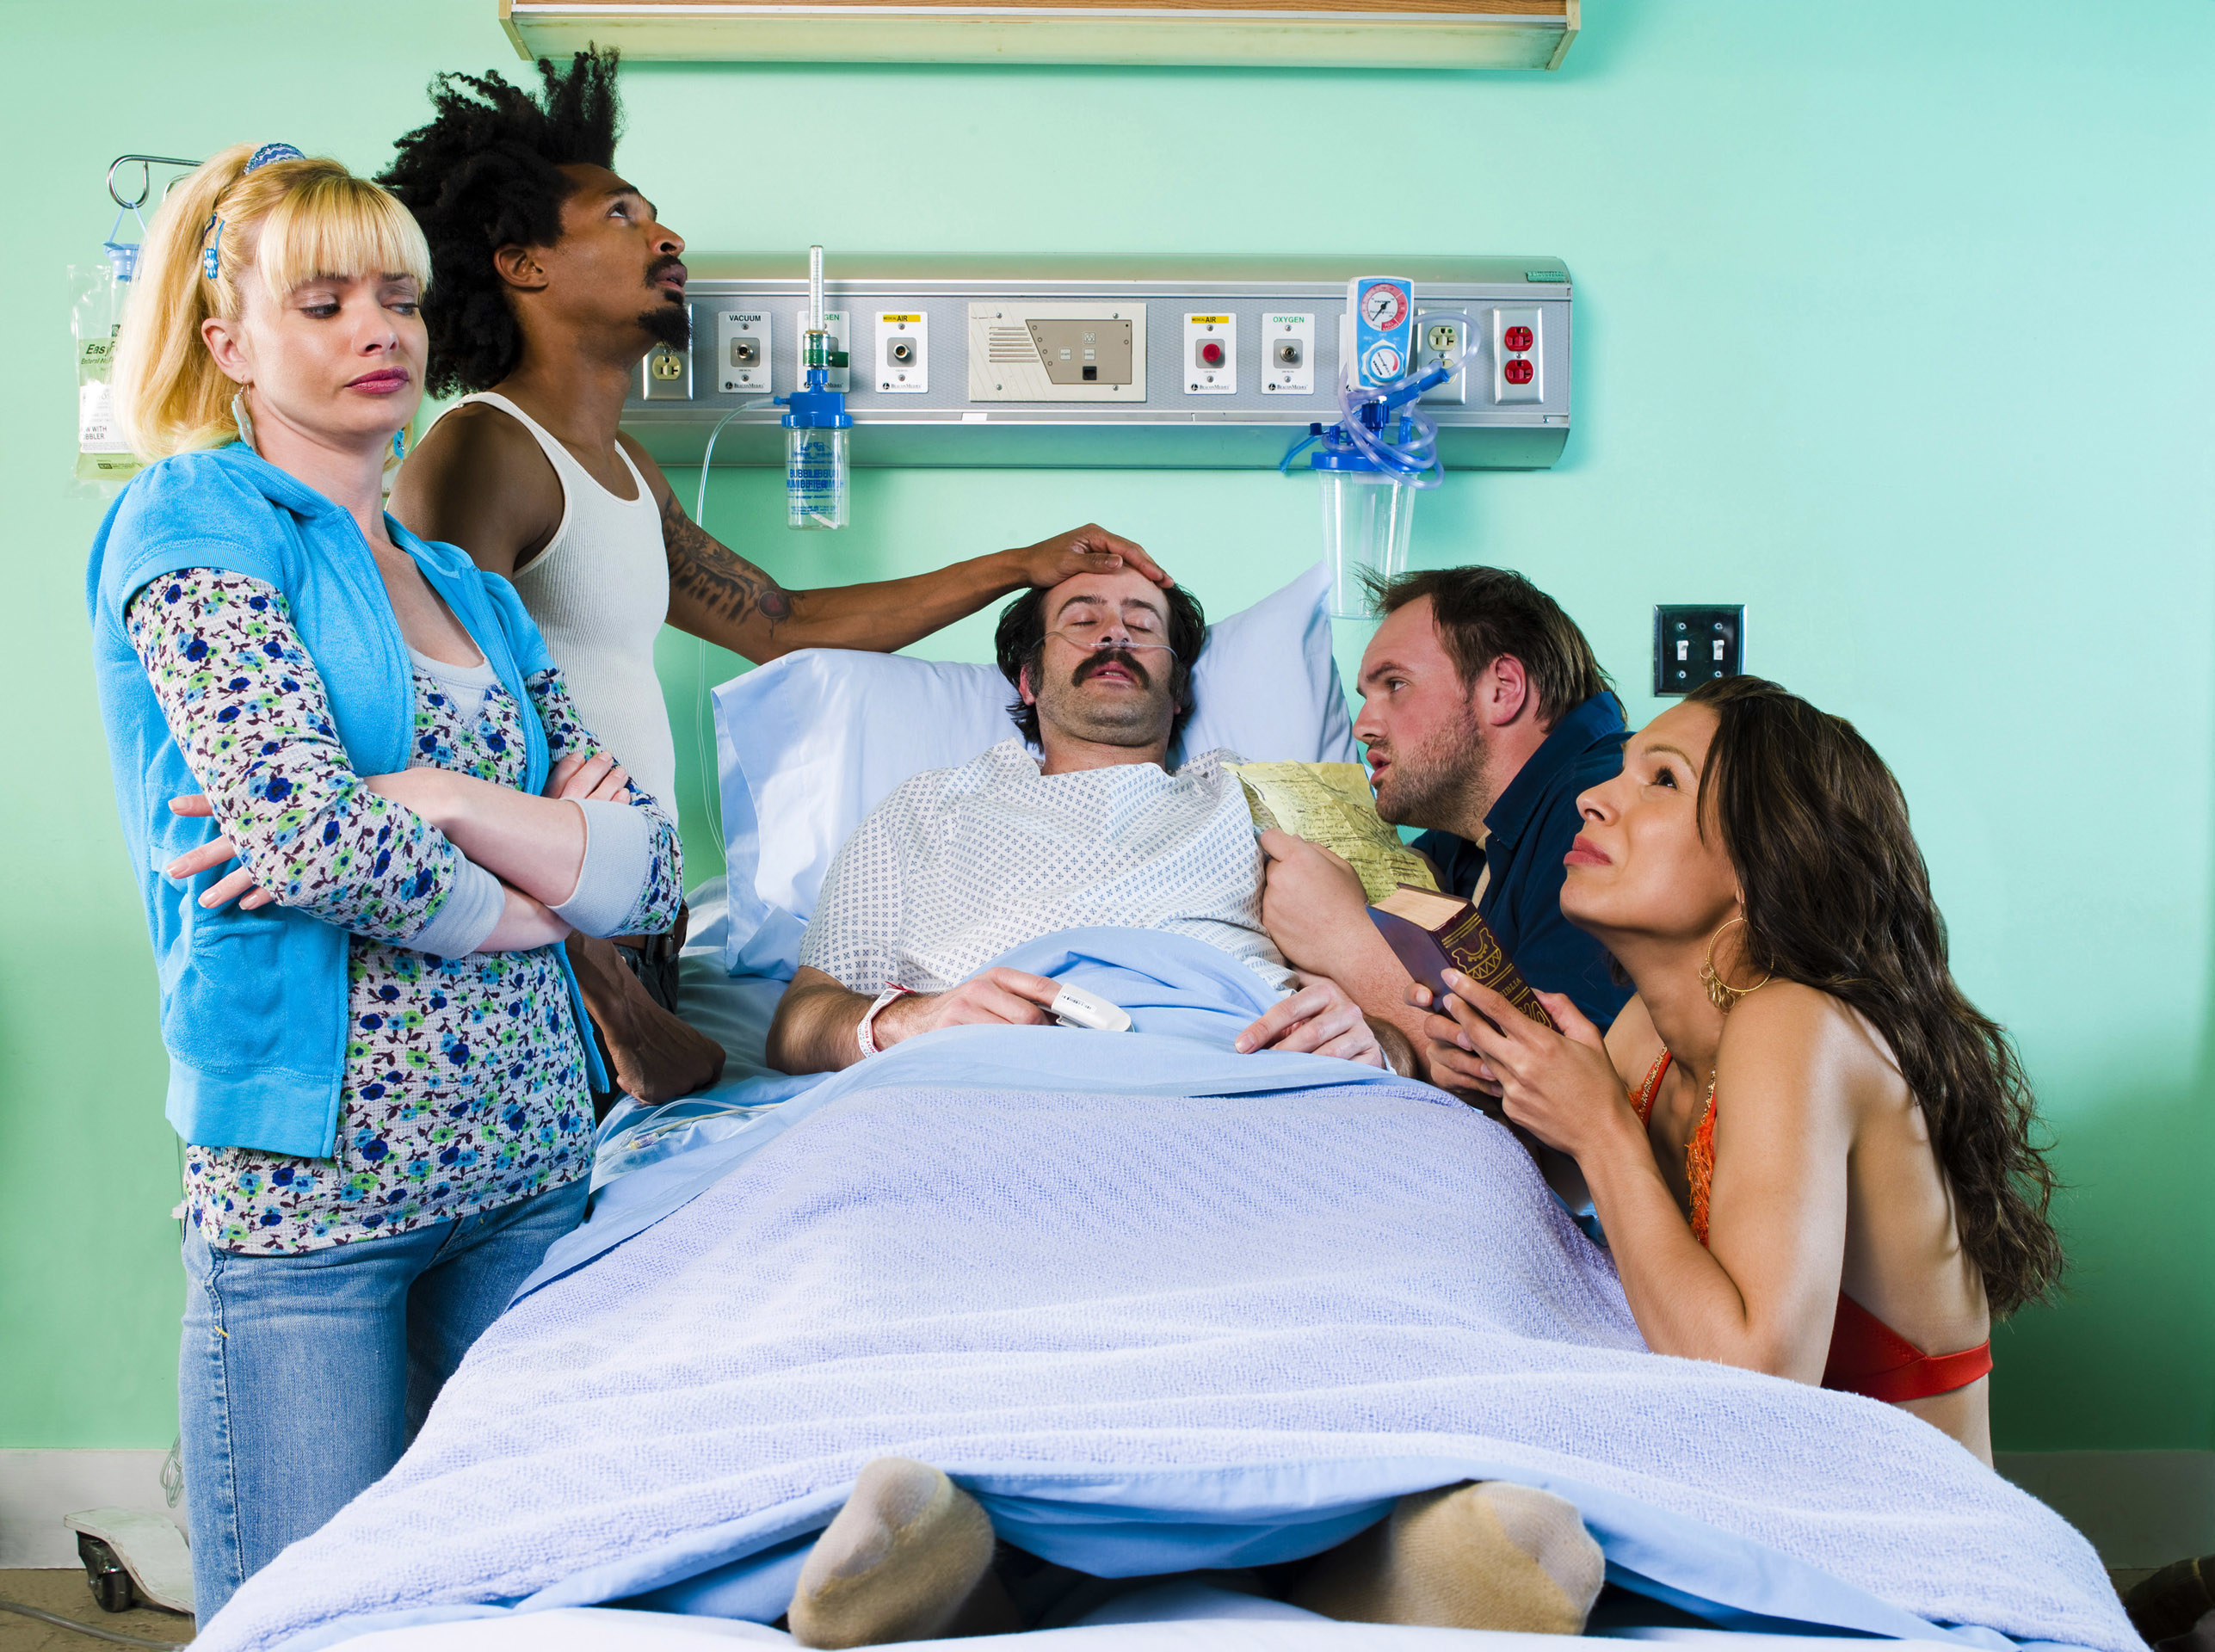 A photo of Early lying on a hospital bed surrounded by the other characters